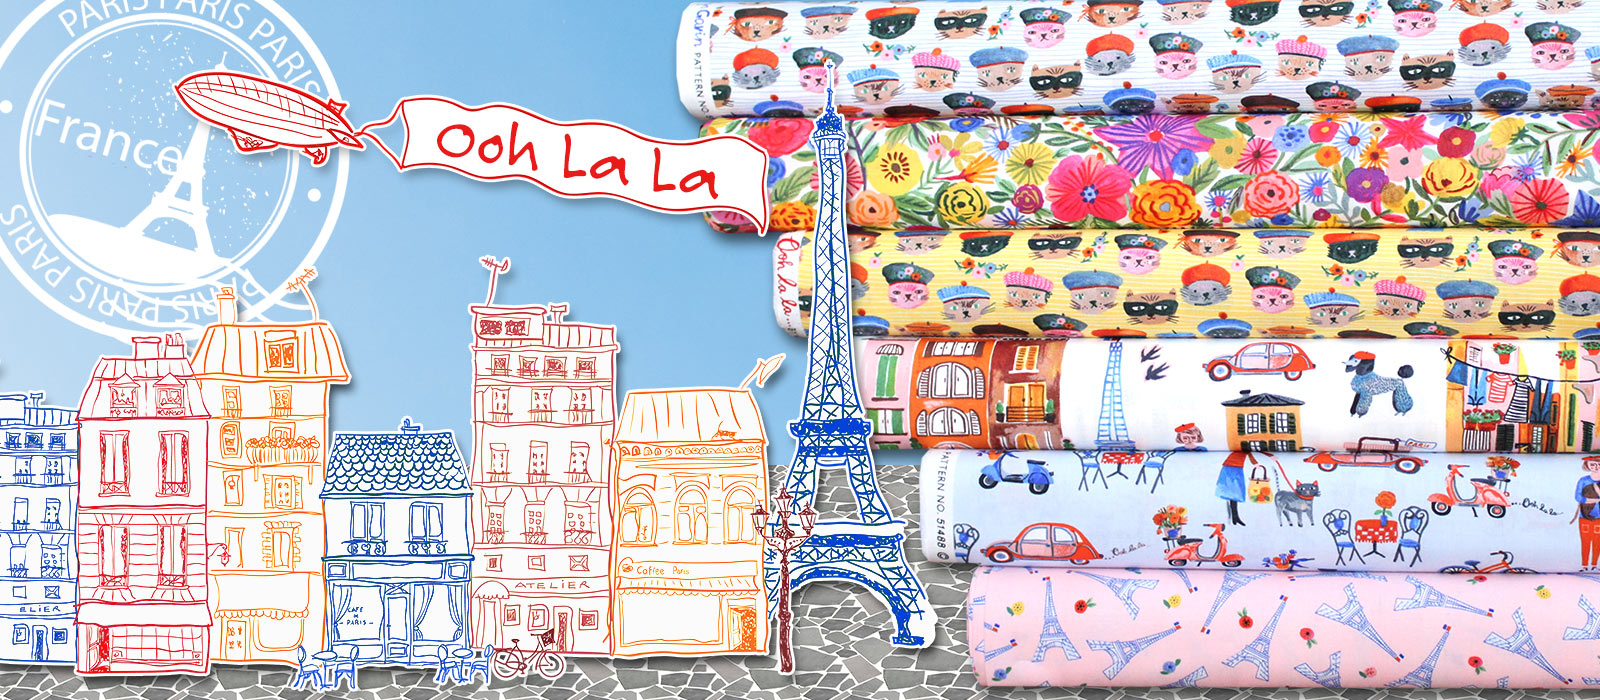 Windham Fabrics Ooh La La Collection by Carolyn Gavin